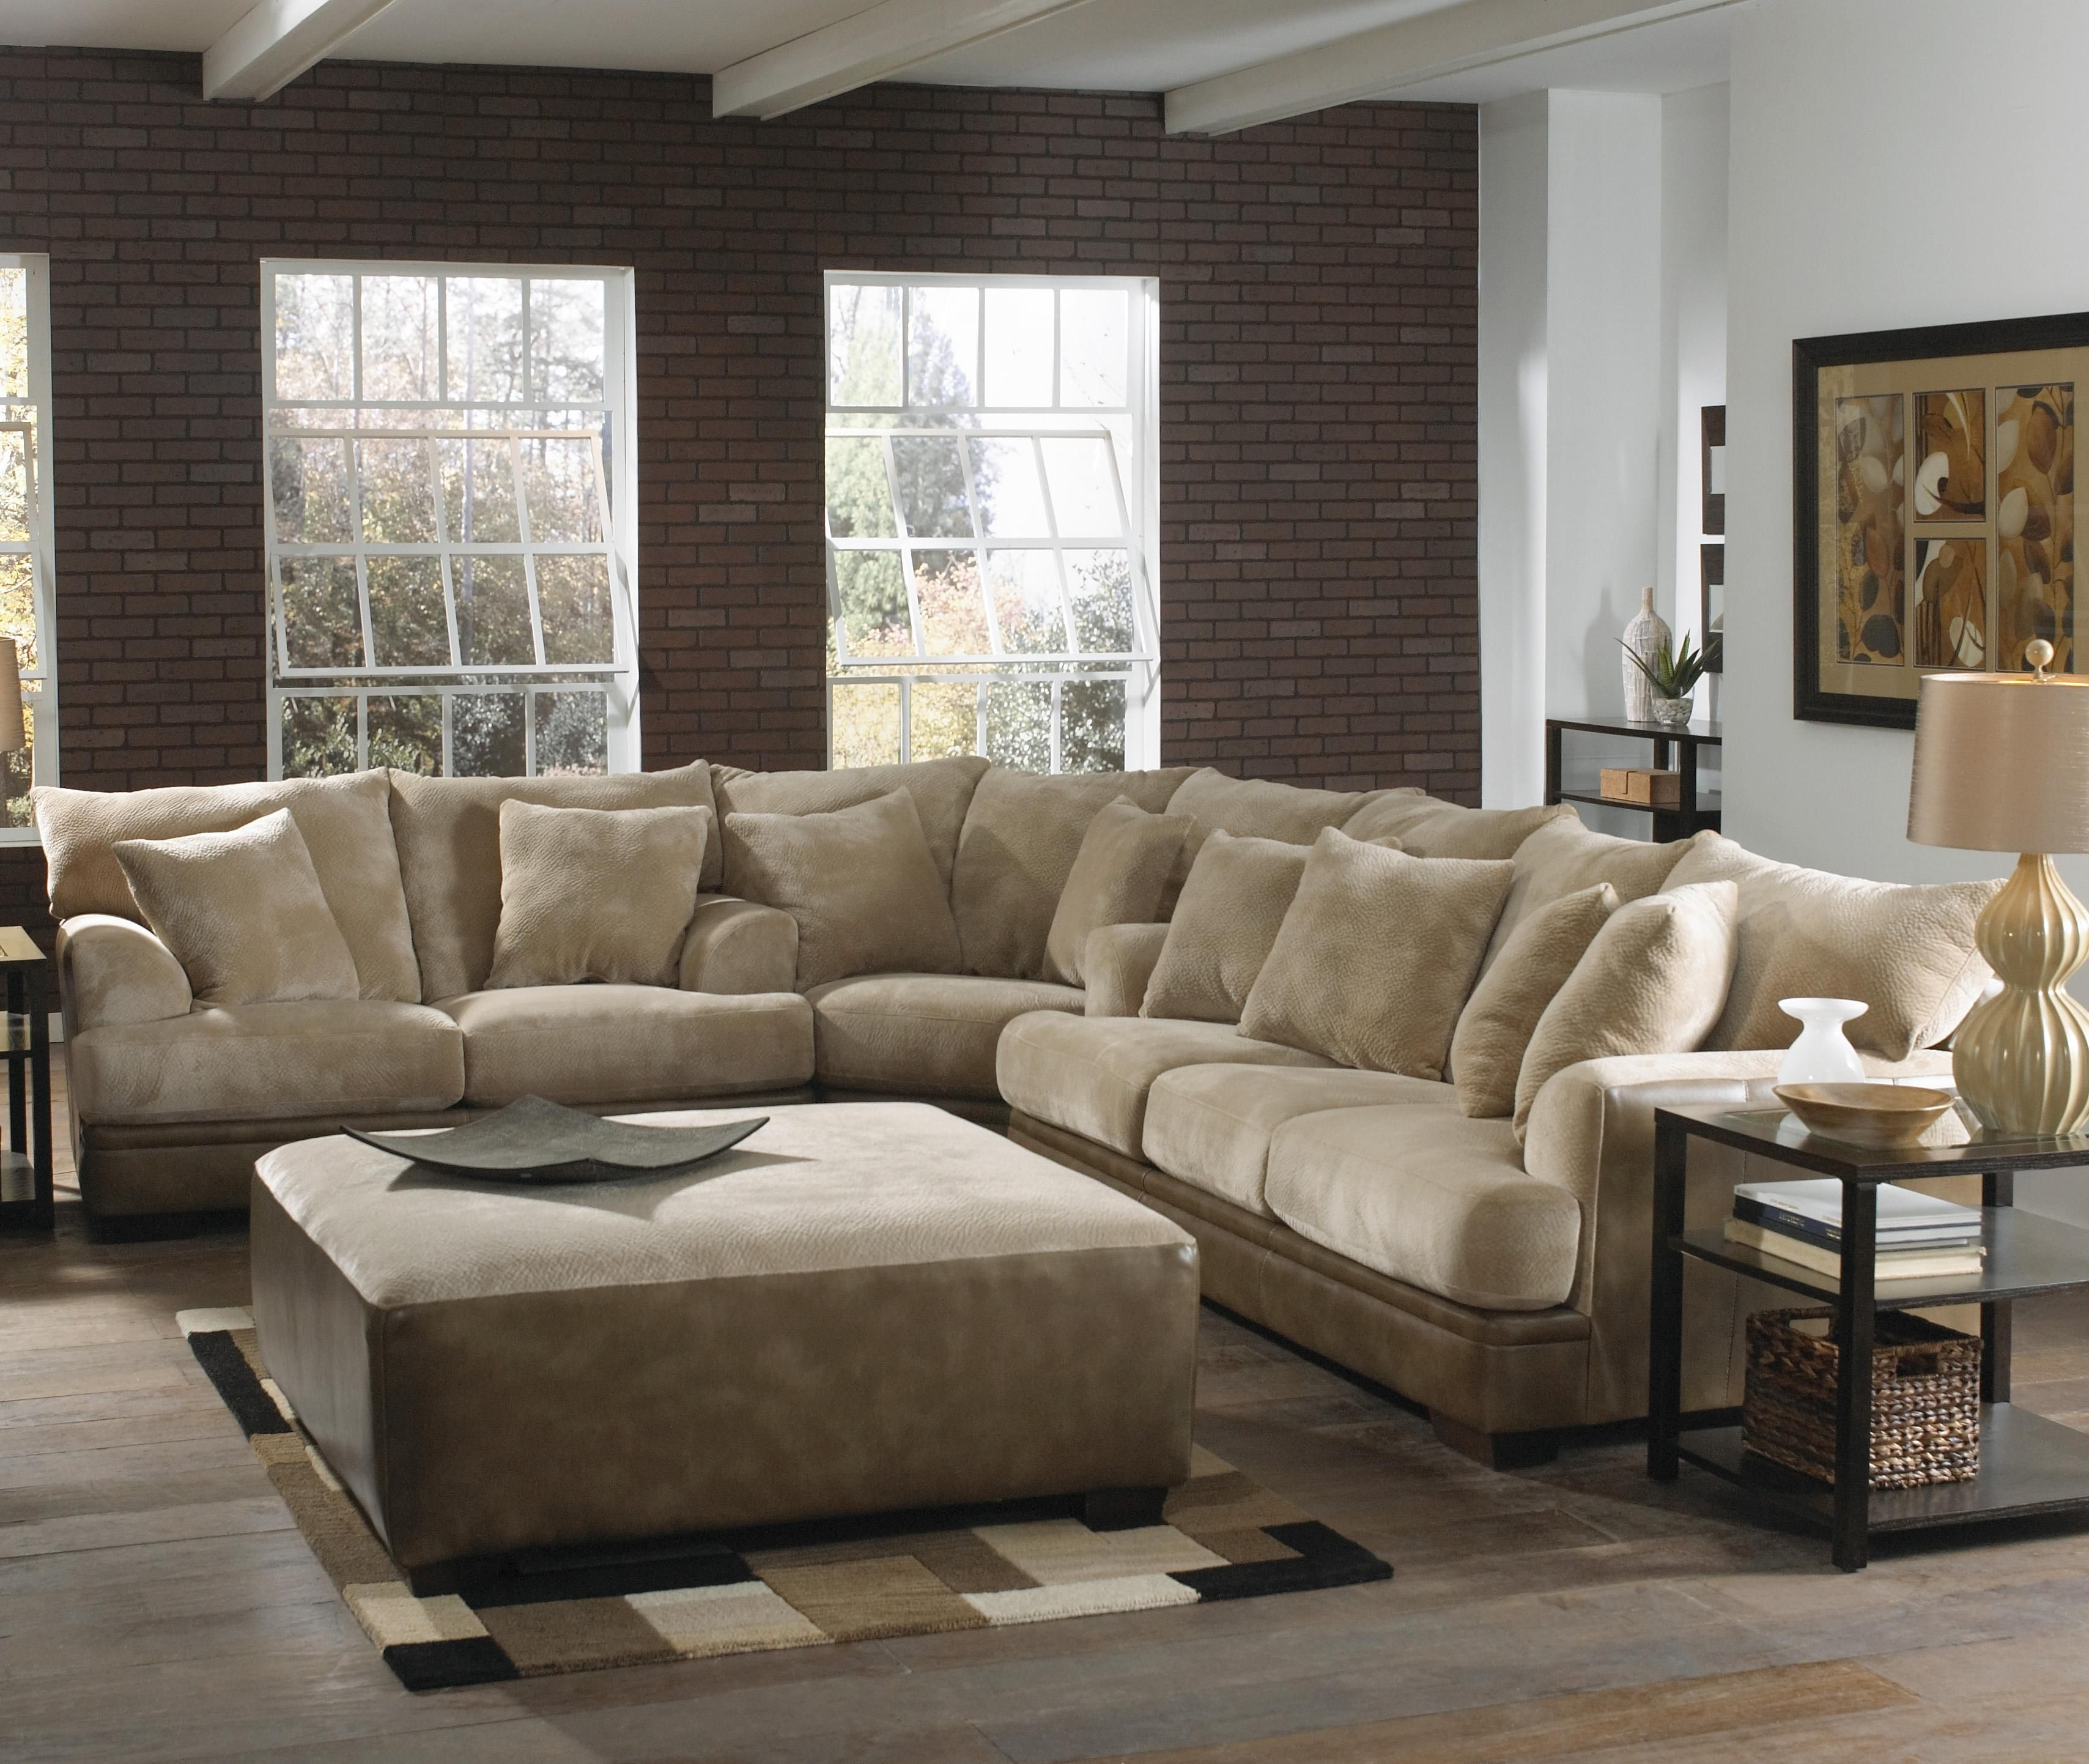 Most Recently Released Barkley Large L Shaped Sectional Sofa With Right Side Loveseat Regarding Jackson Tn Sectional Sofas (View 4 of 15)